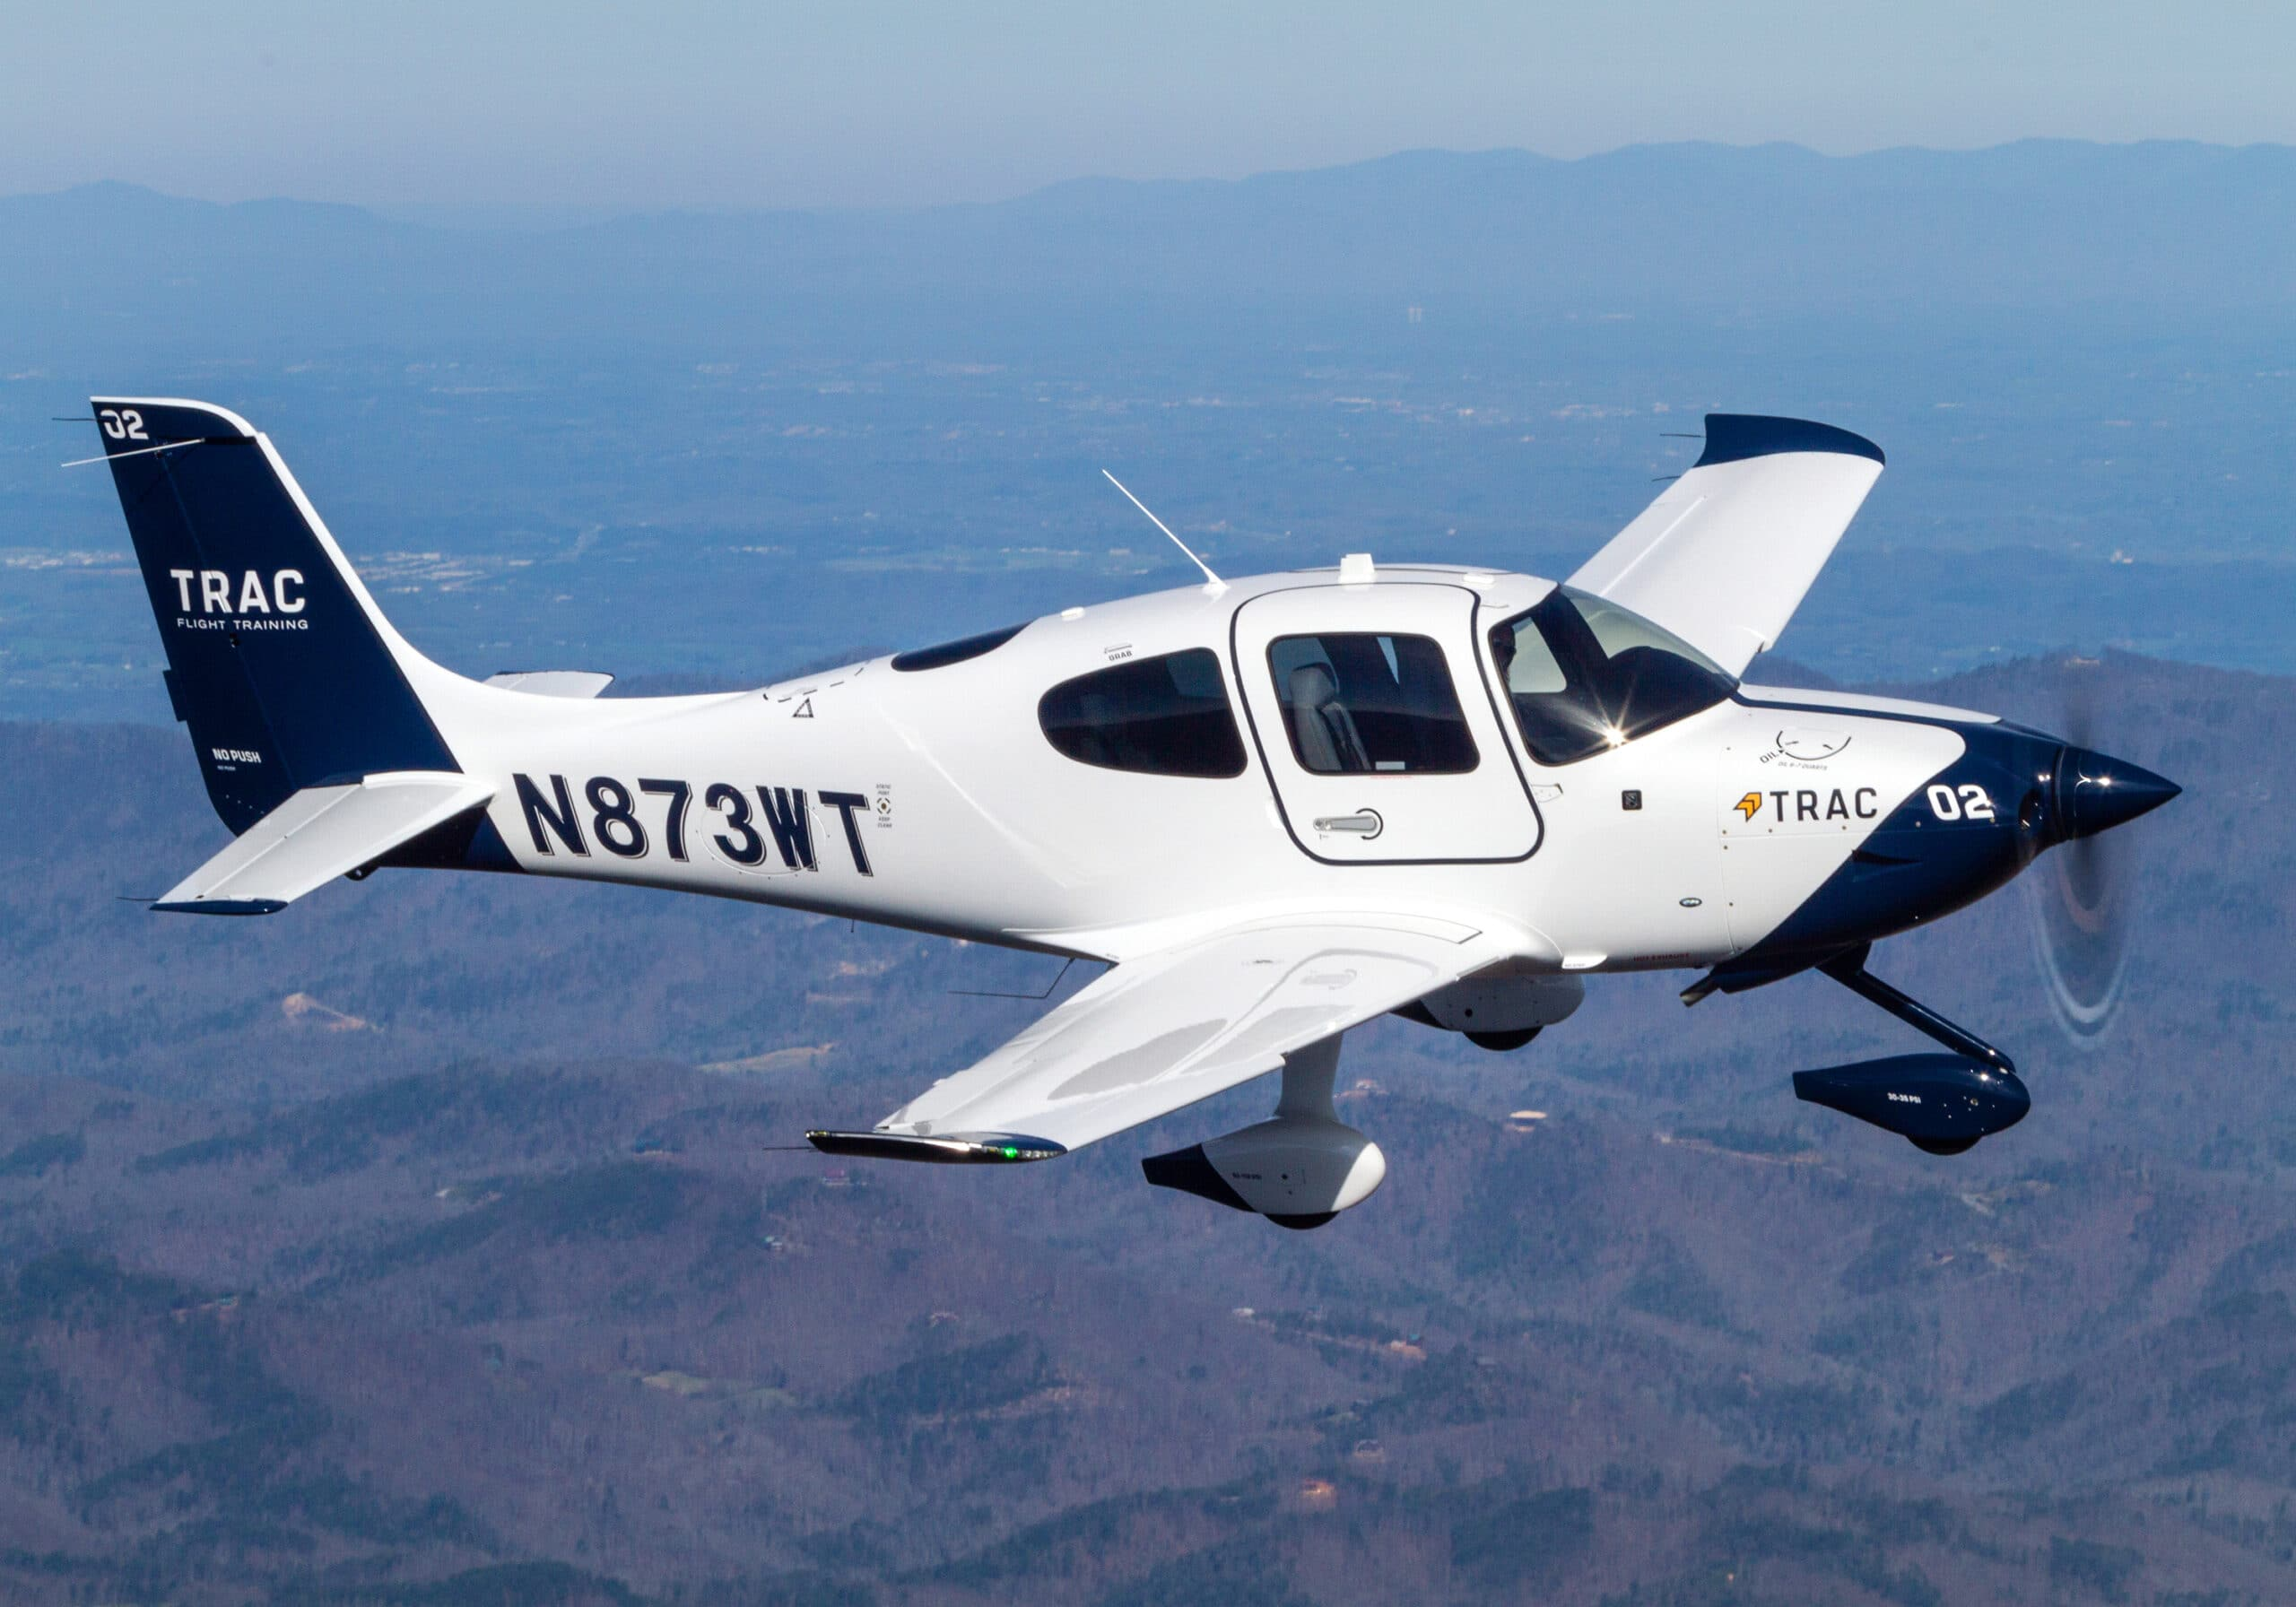 The TRAC Series: Purpose Built for Flight Training